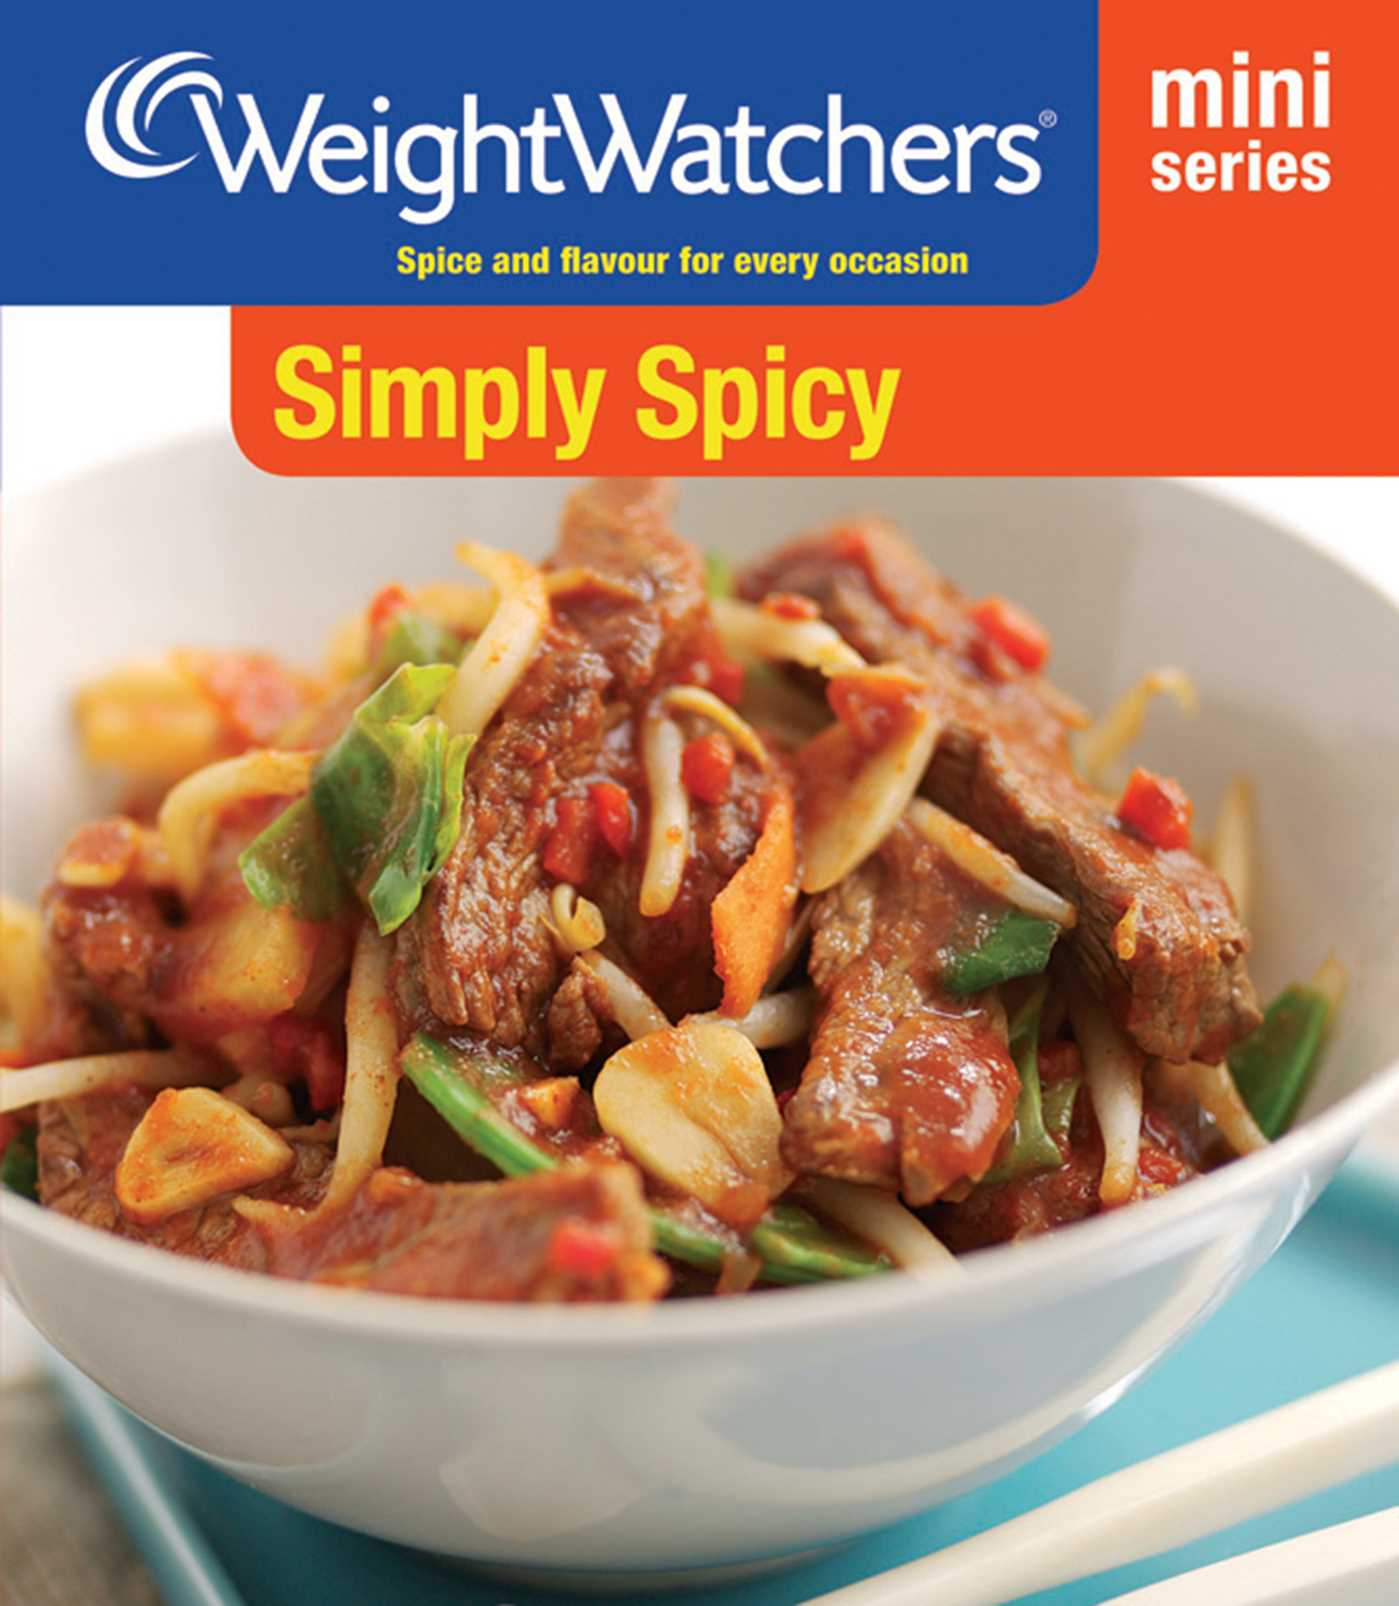 Weight watchers mini series simply spicy 9781471151361 hr